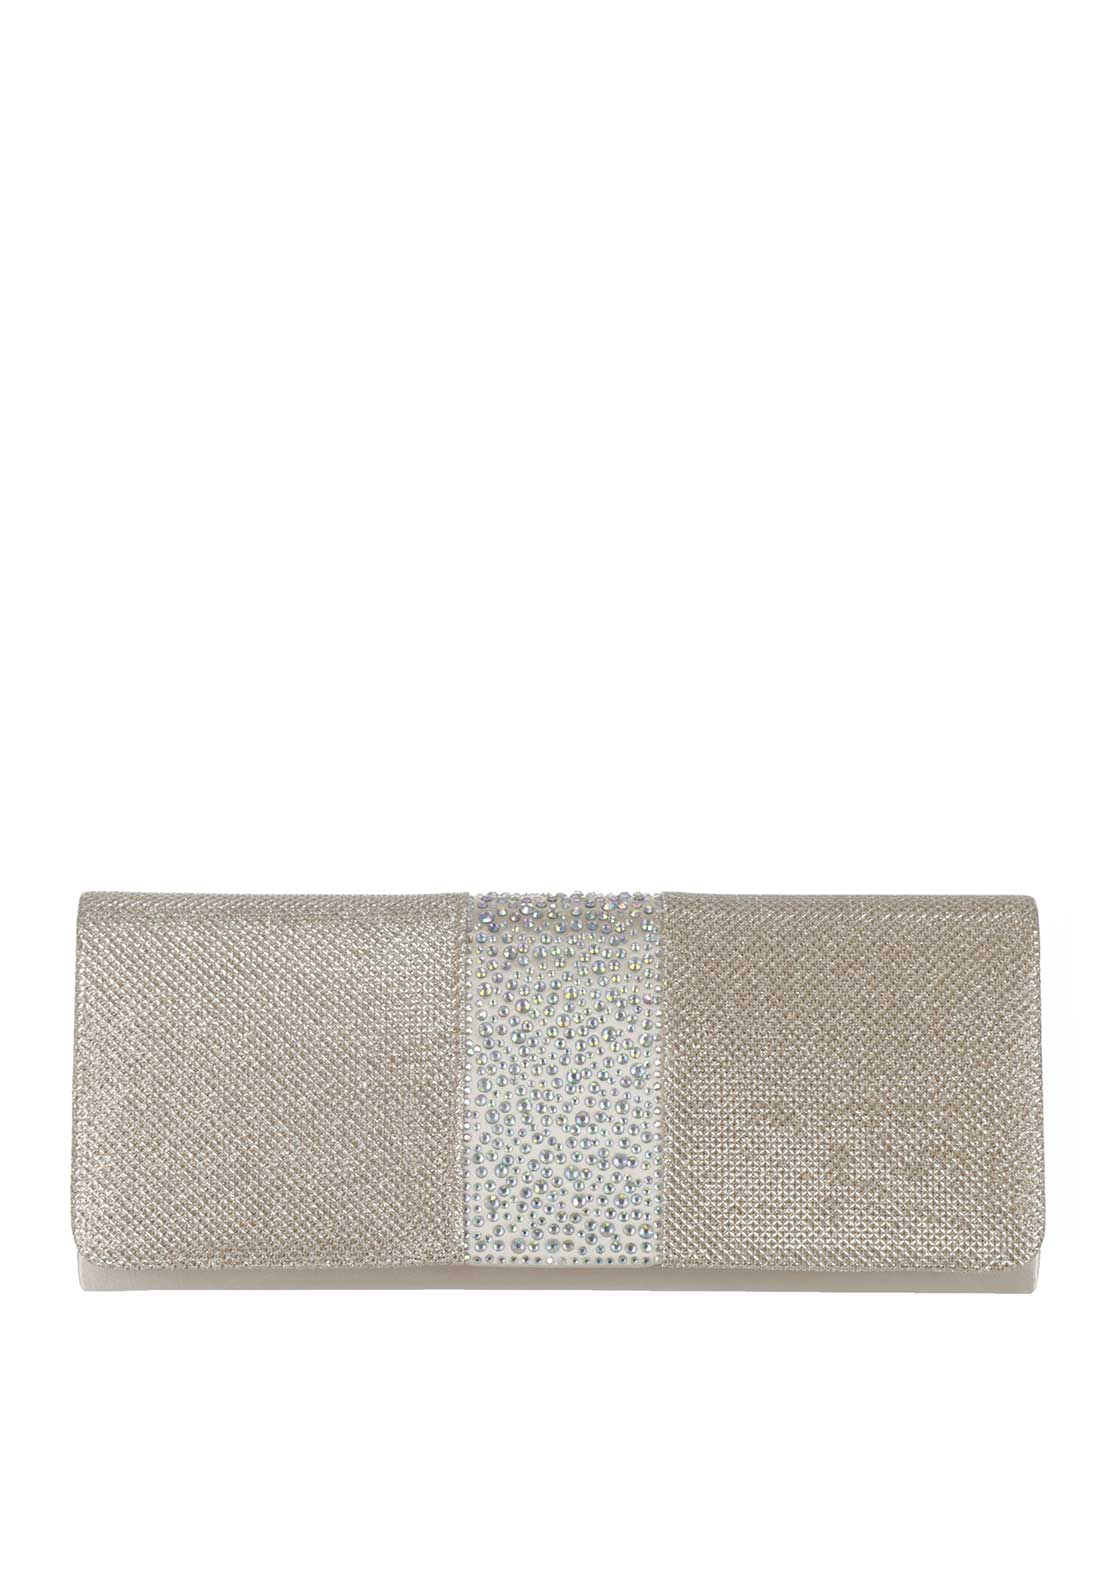 Glamour Metallic Gem Clutch Bag, Nude